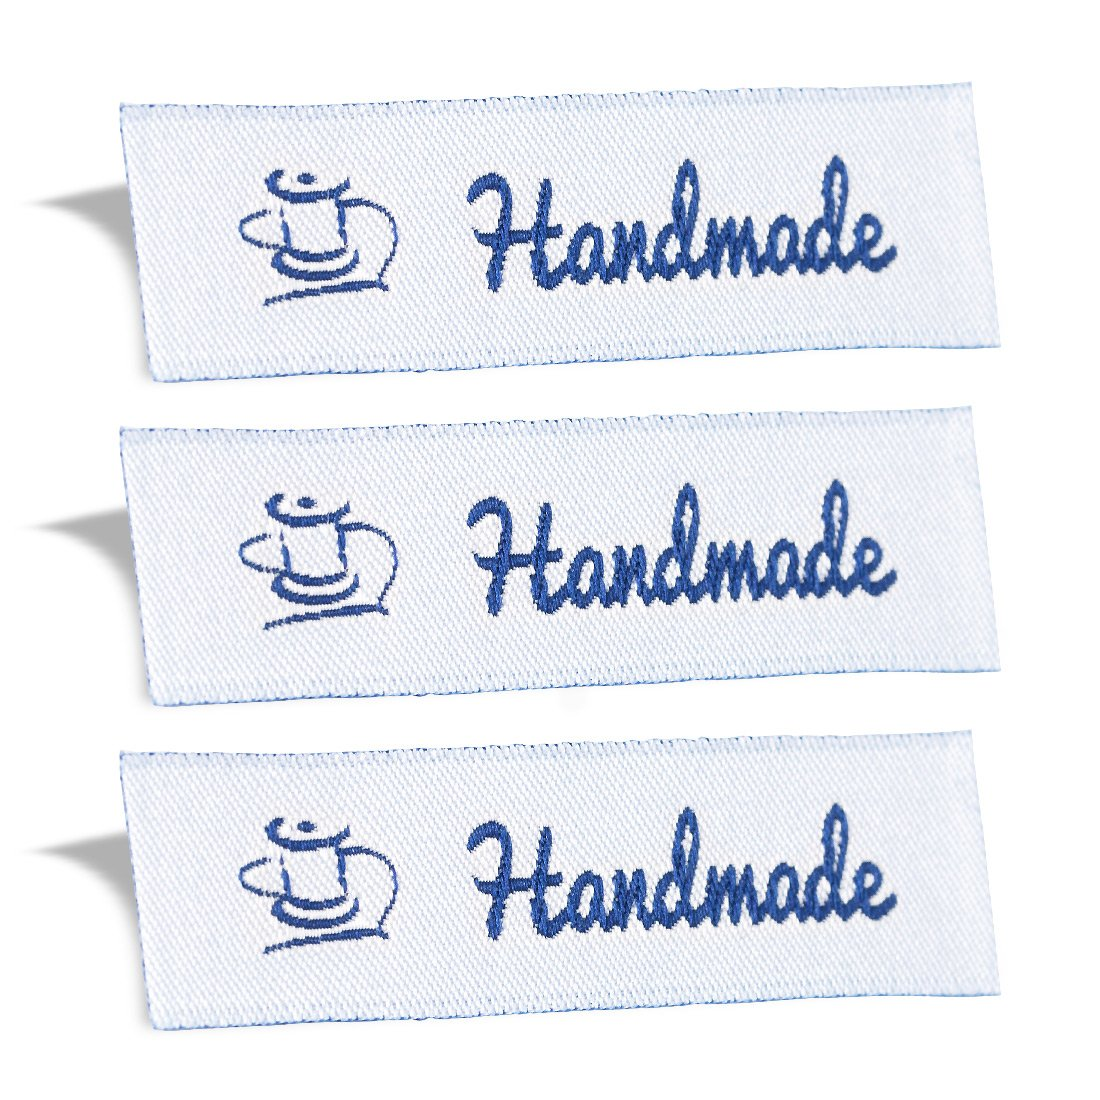 f3b158a2aa0c Cheap Sew Woven Labels, find Sew Woven Labels deals on line at ...